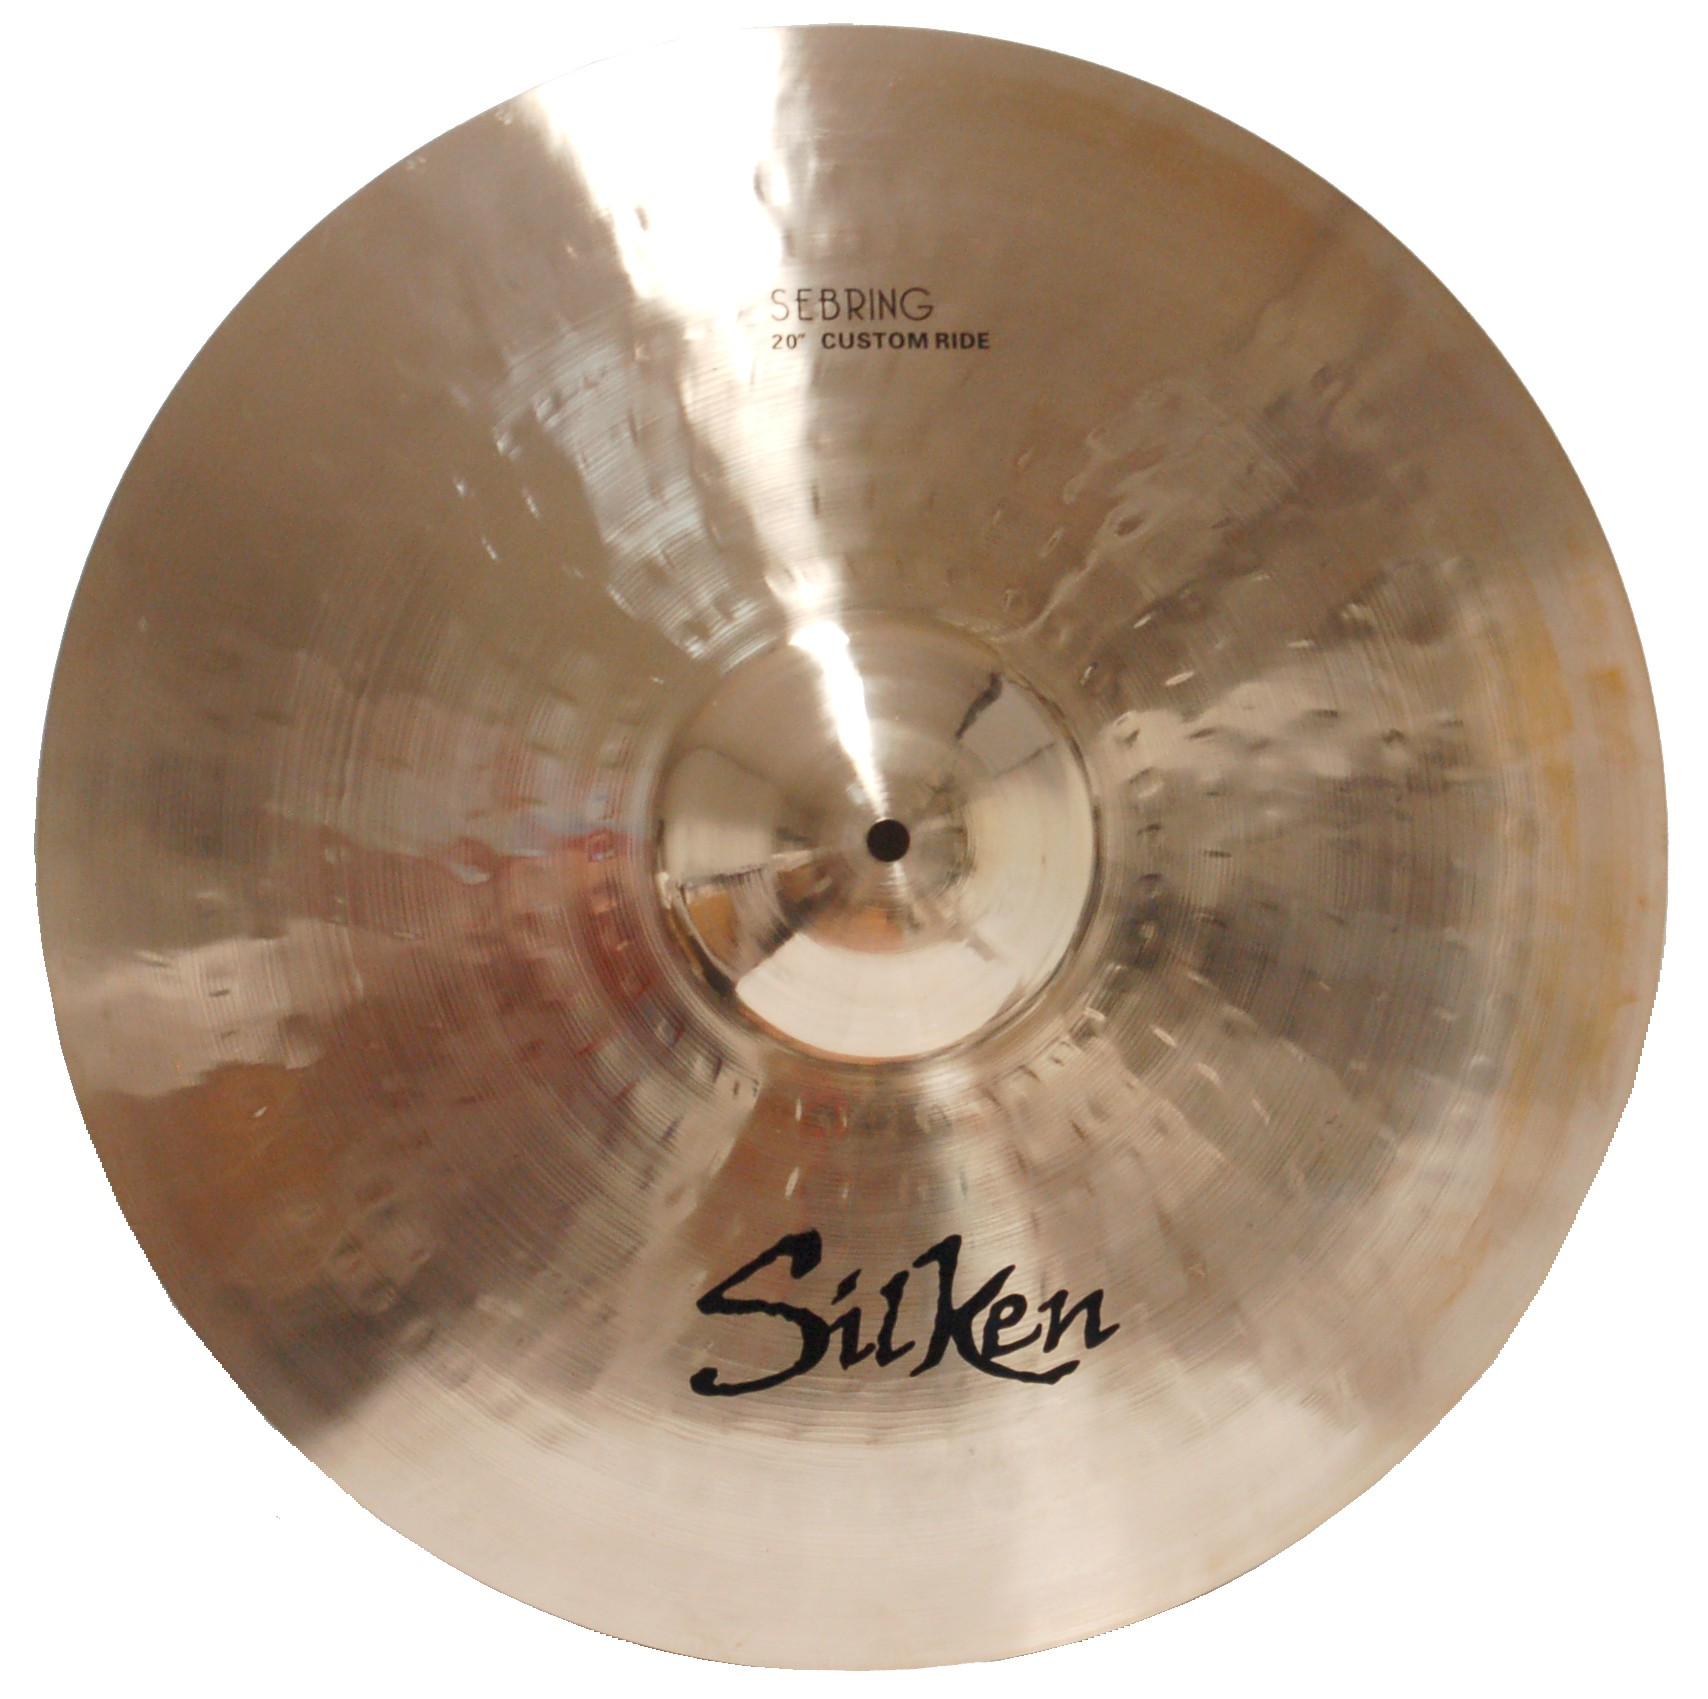 "SILKEN B20 20"" CUSTOM RIDE SEBRING SERIES CYMBAL"